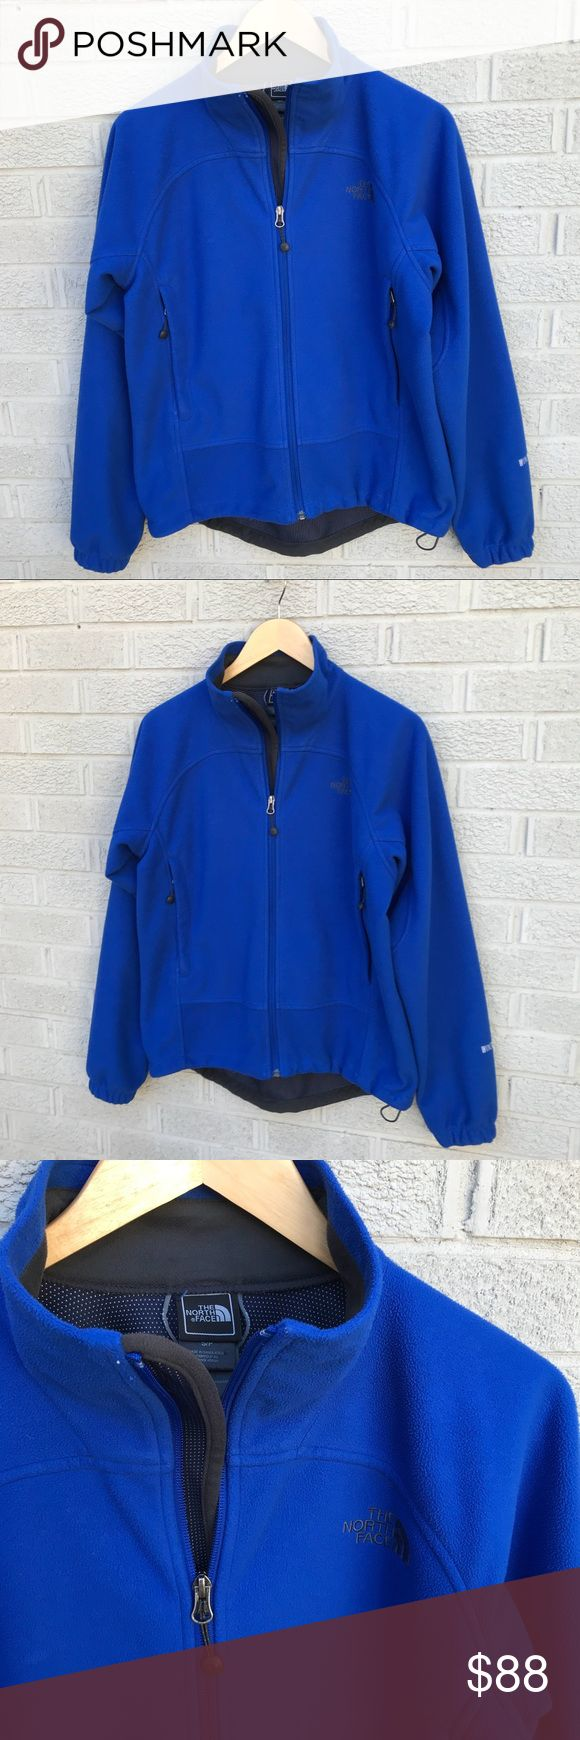 """The North Face Men's Windwall Fleece Zip Jacket North Face Men's Windwall Fleece Zip Jacket in Blue! Full Zip wind proof jacket! 2 Front zip pockets, hem cinch cord & elastic sleeve cuffs for added warmth! Longer length in Back. Size Small. 100% Poly. 21.5"""" across the chest & 23.5"""" long in front & 25.5"""" in back. Previously loved. A little faded. JS3598020118 The North Face Jackets & Coats Windbreakers"""